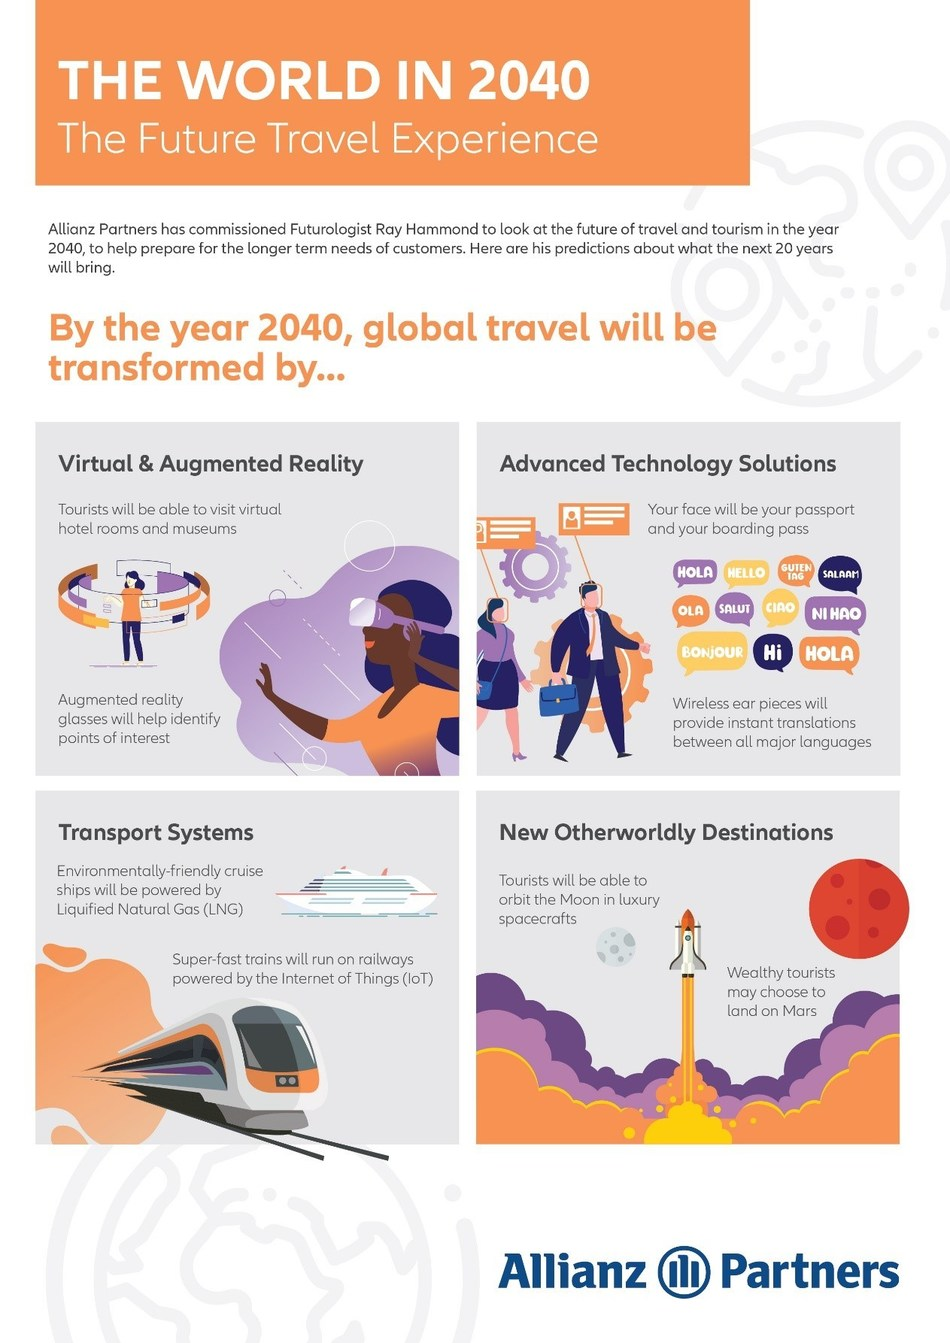 Predicting The Future Of Travel In 2040